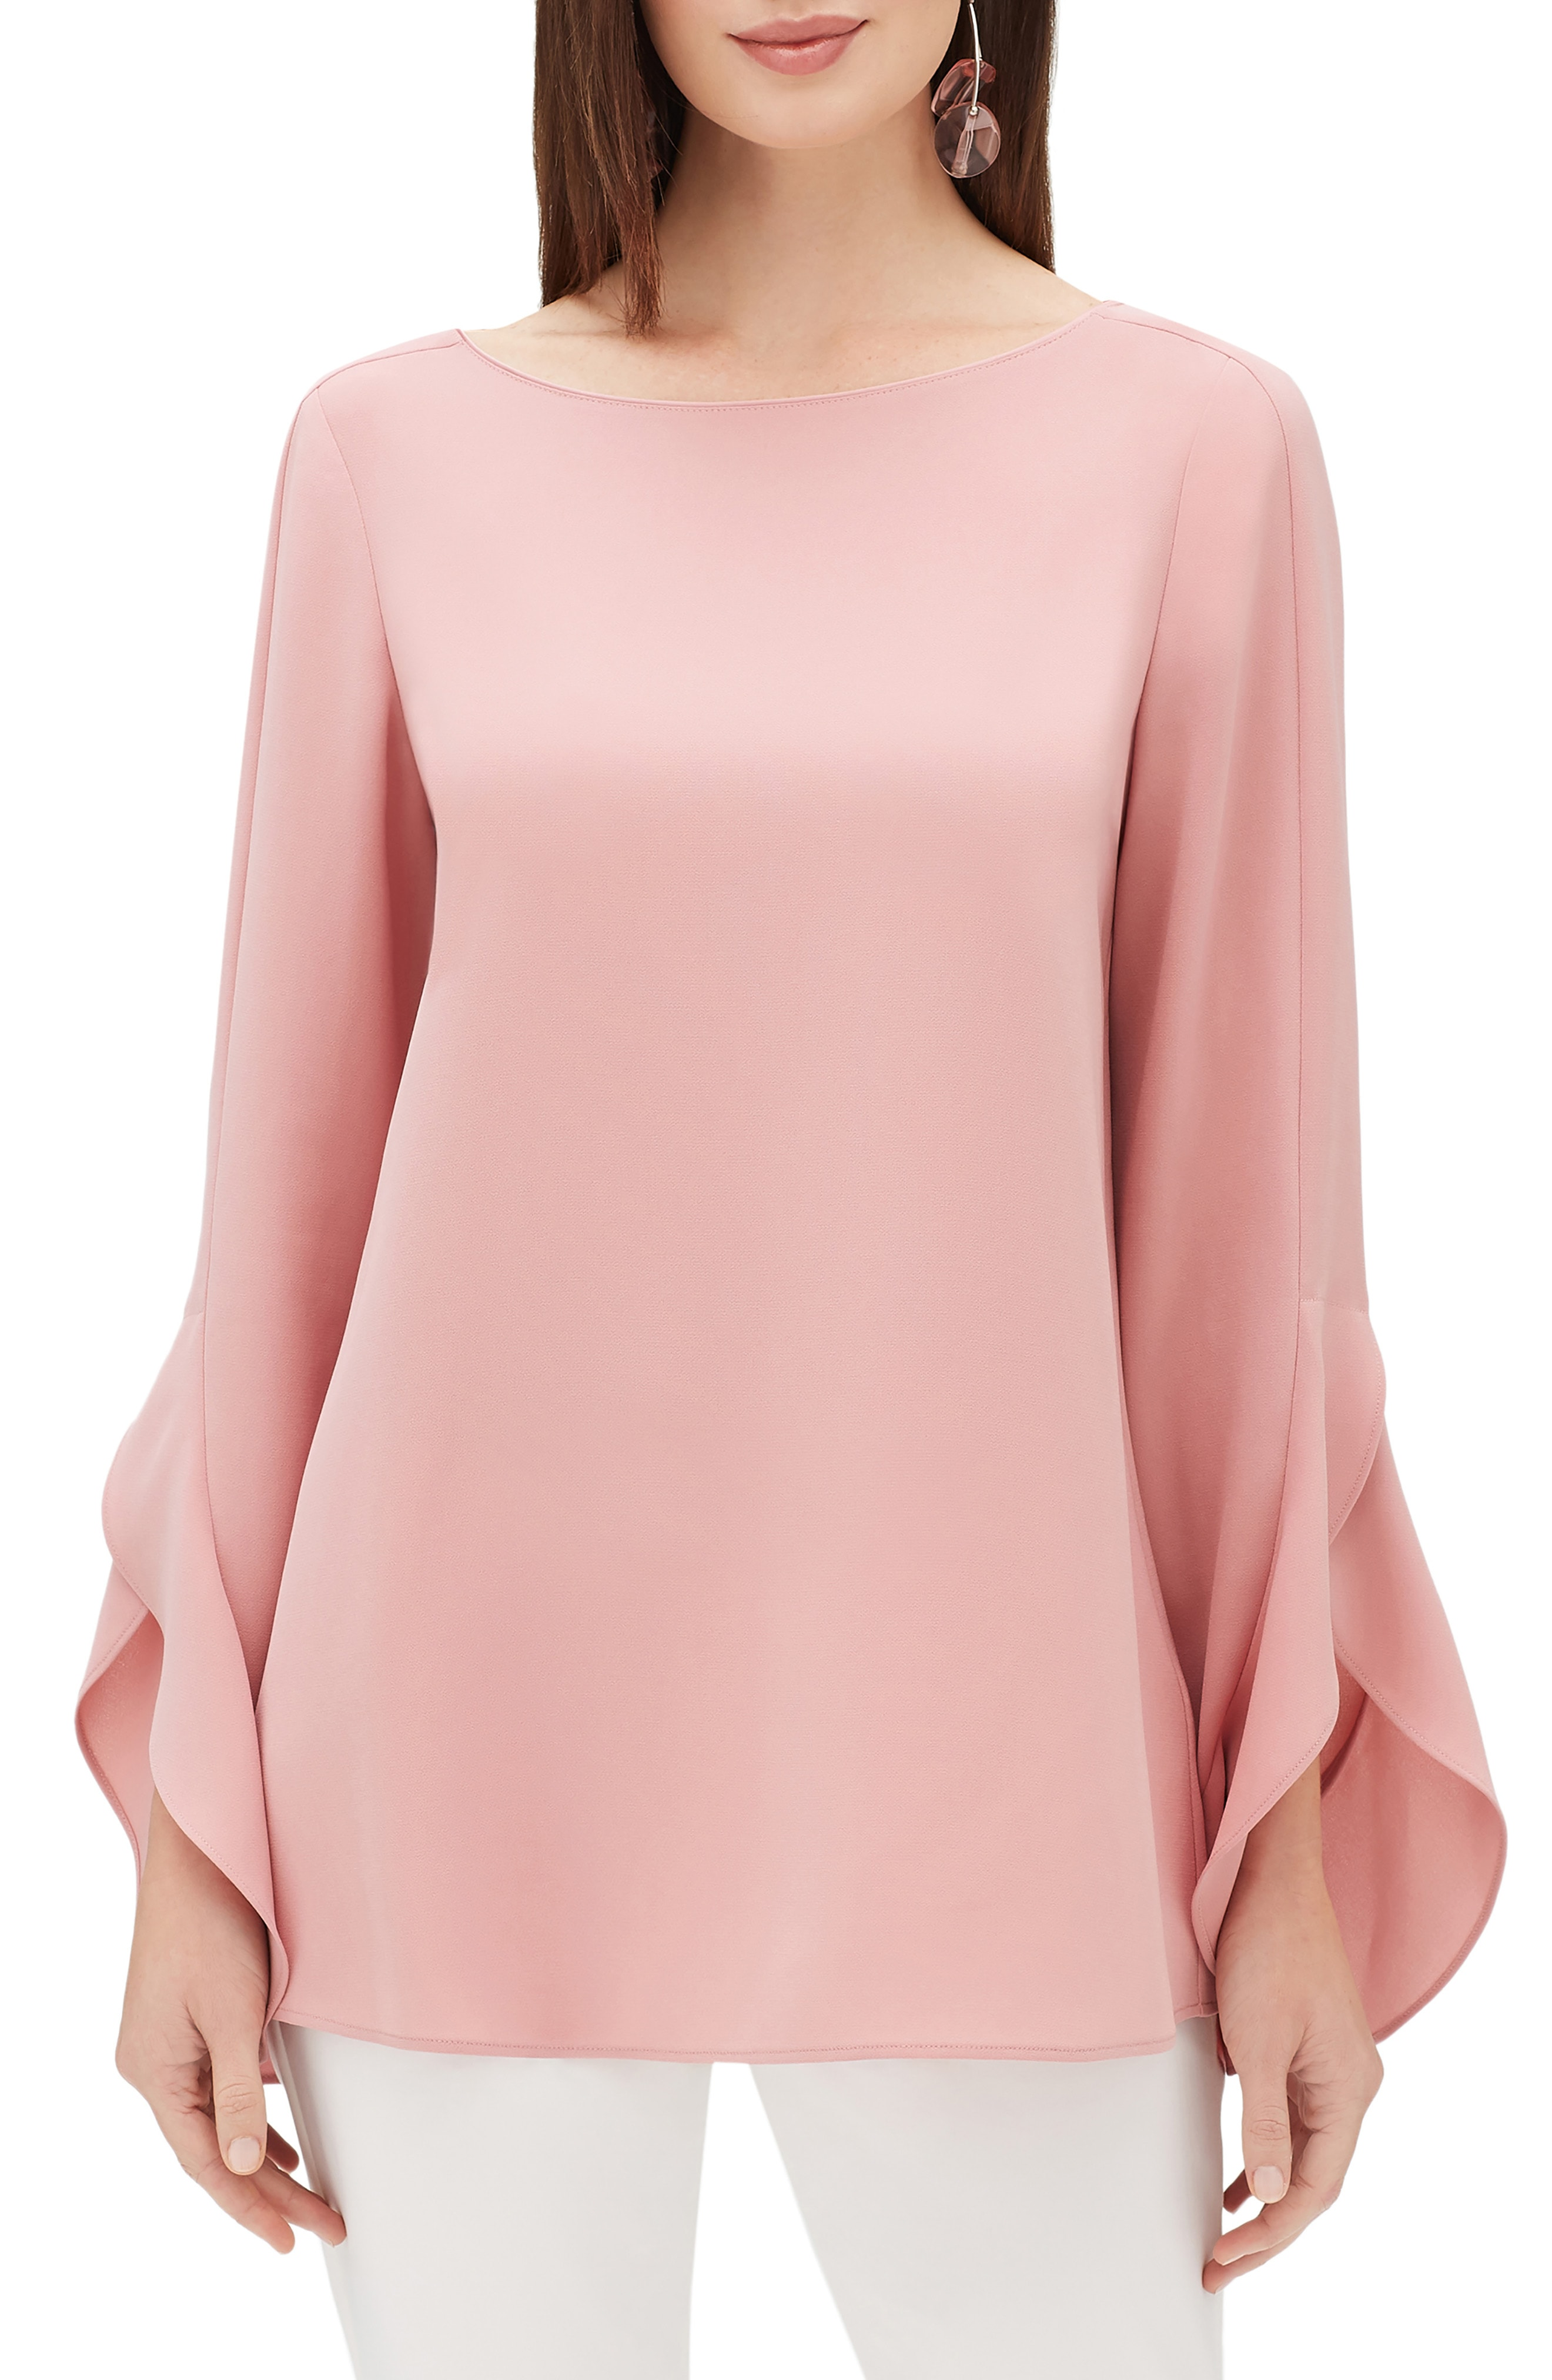 Shirts & Blouses Lafayette 148 New York Clothing for Women | Nordstrom